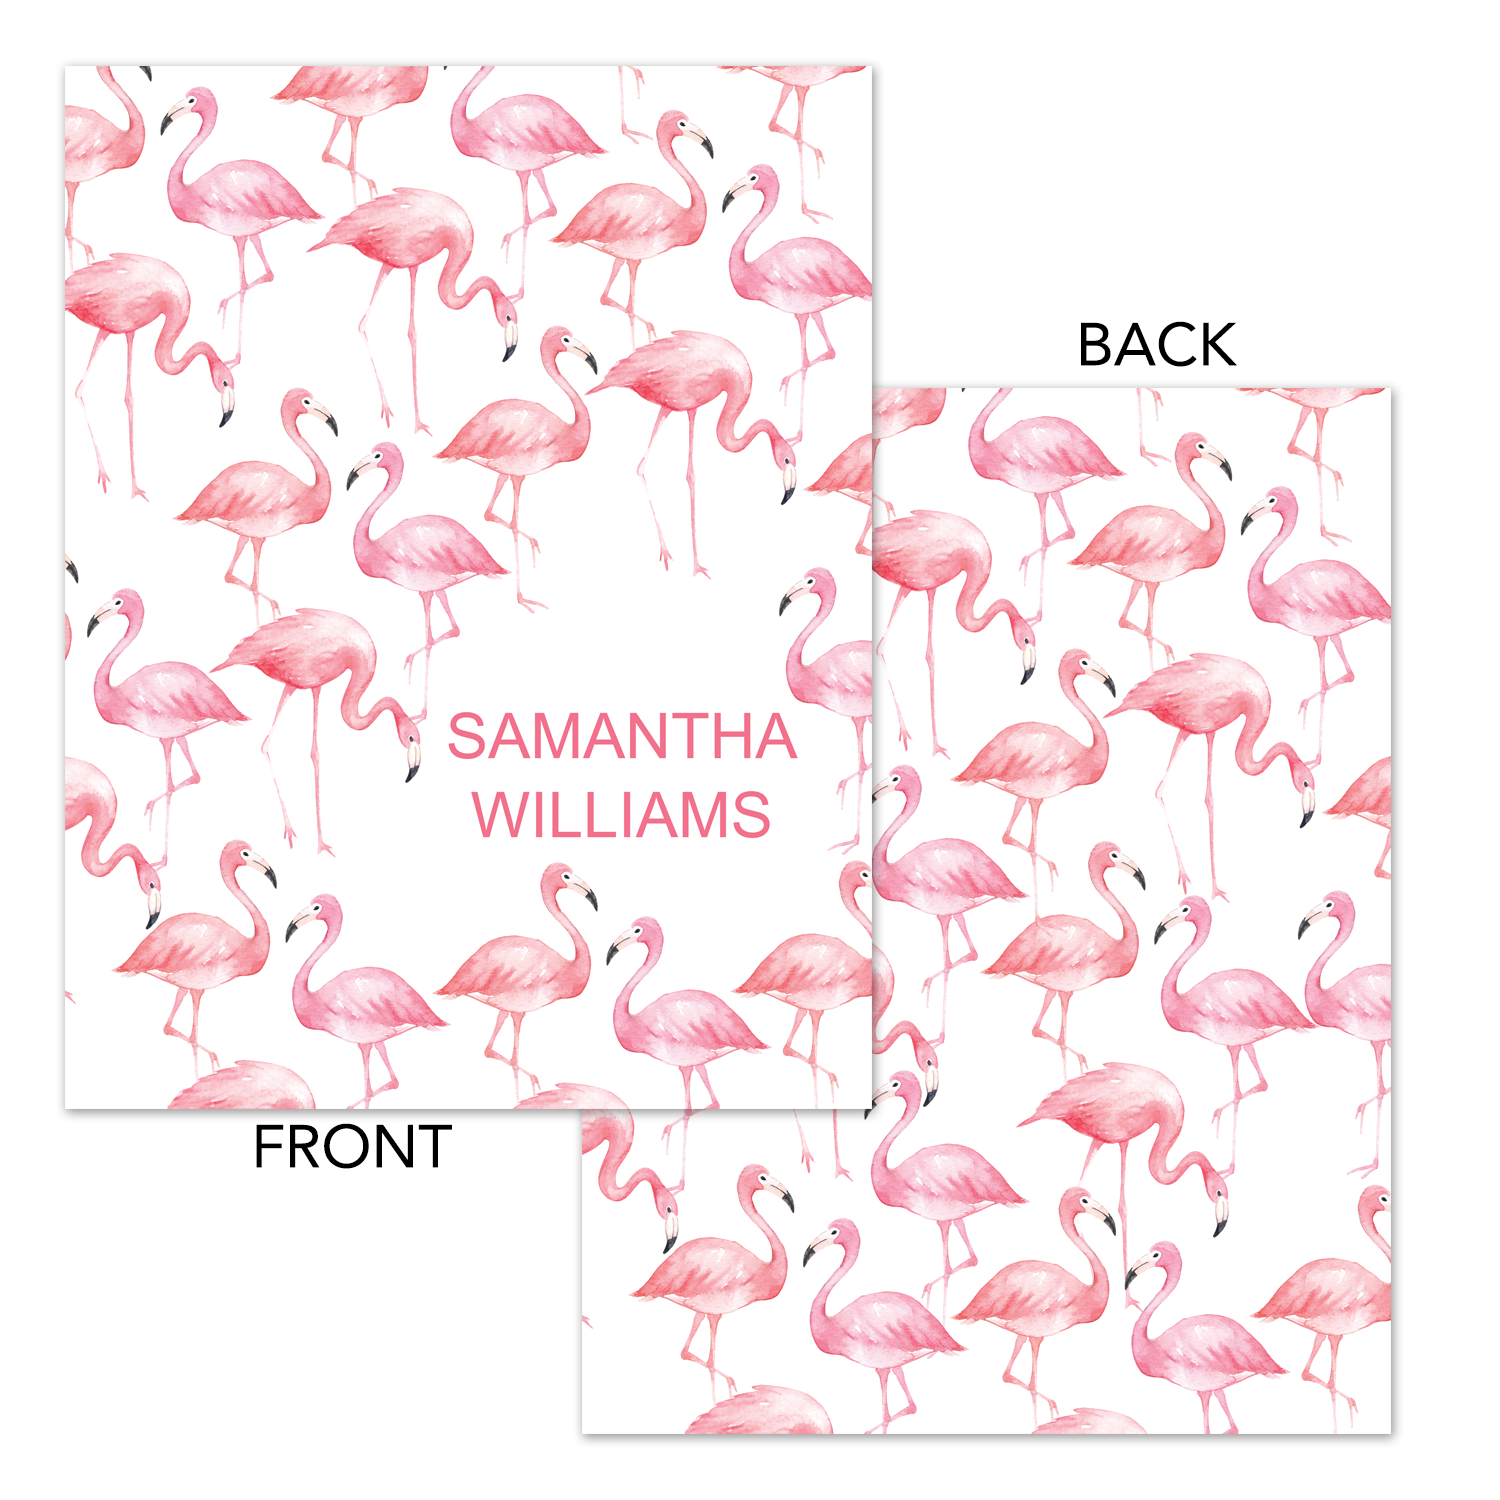 photo about Flamingo Printable titled Flamingo Printable Binder Go over - Planner Include